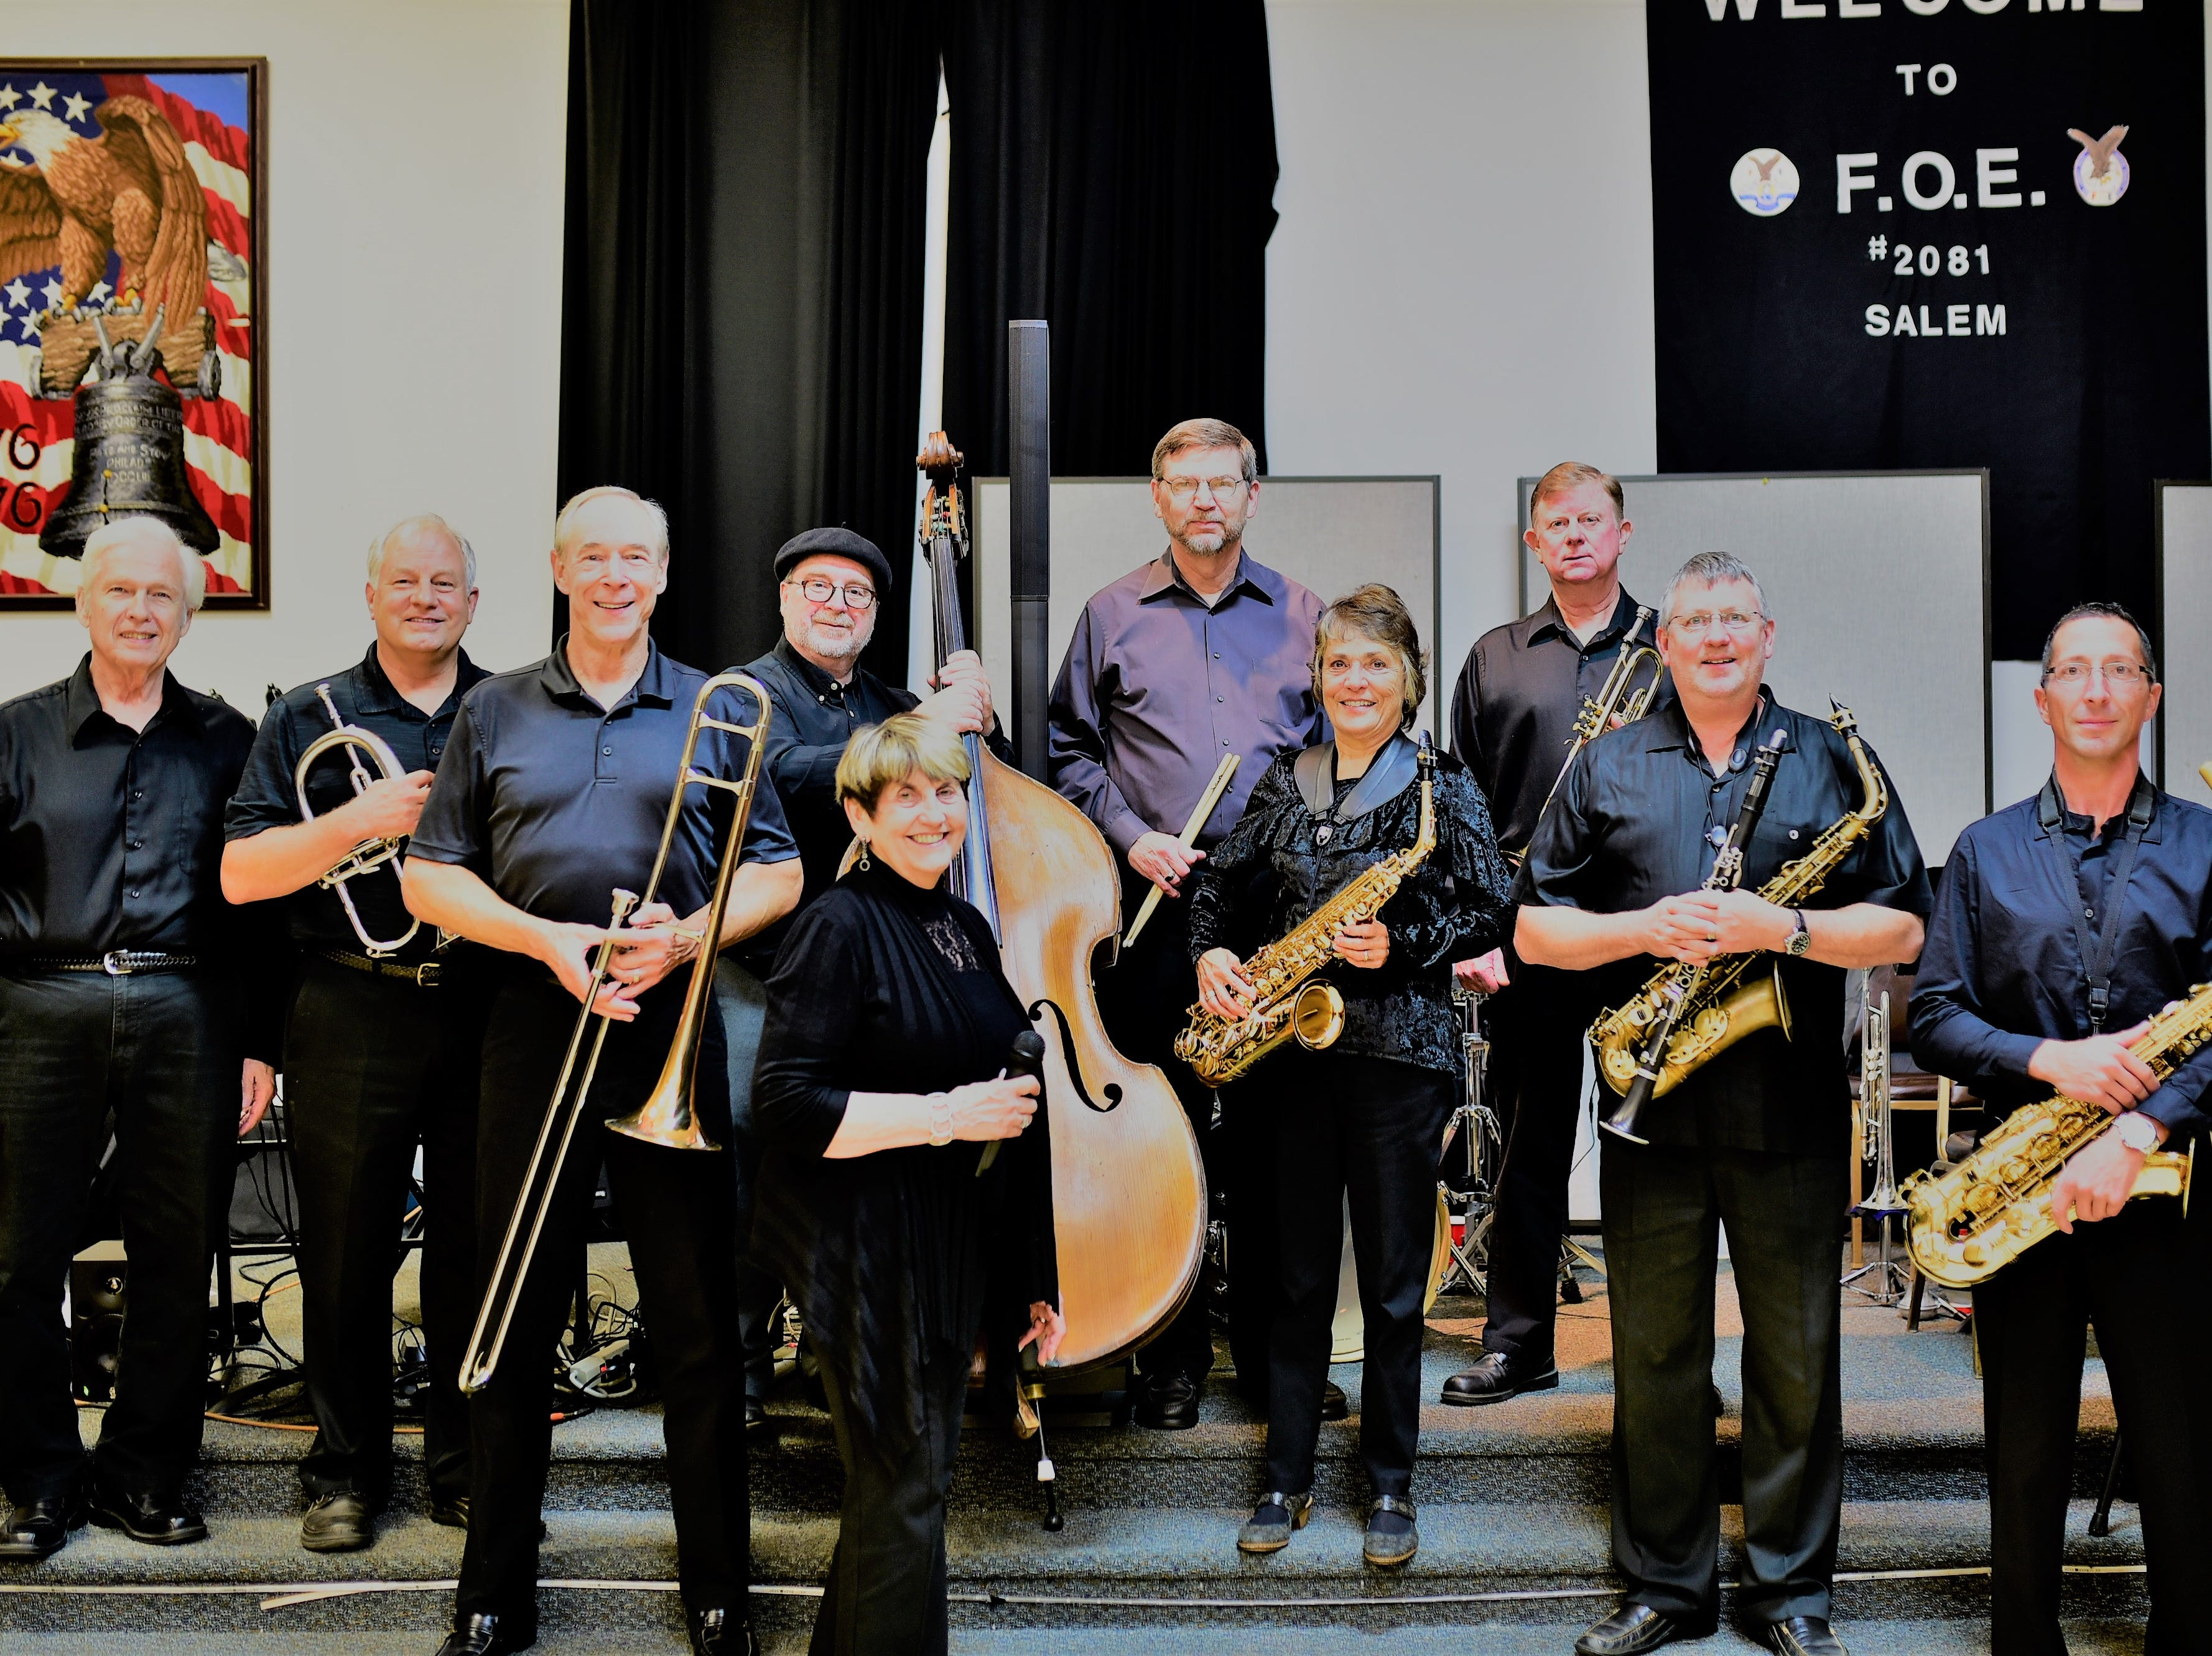 Concert:The Grand Jazz Band will perform at a dance, 7 to 10 p.m. Friday, Nov. 16, Salem Eagles,2771 Pence Loop SE, Salem. $5.